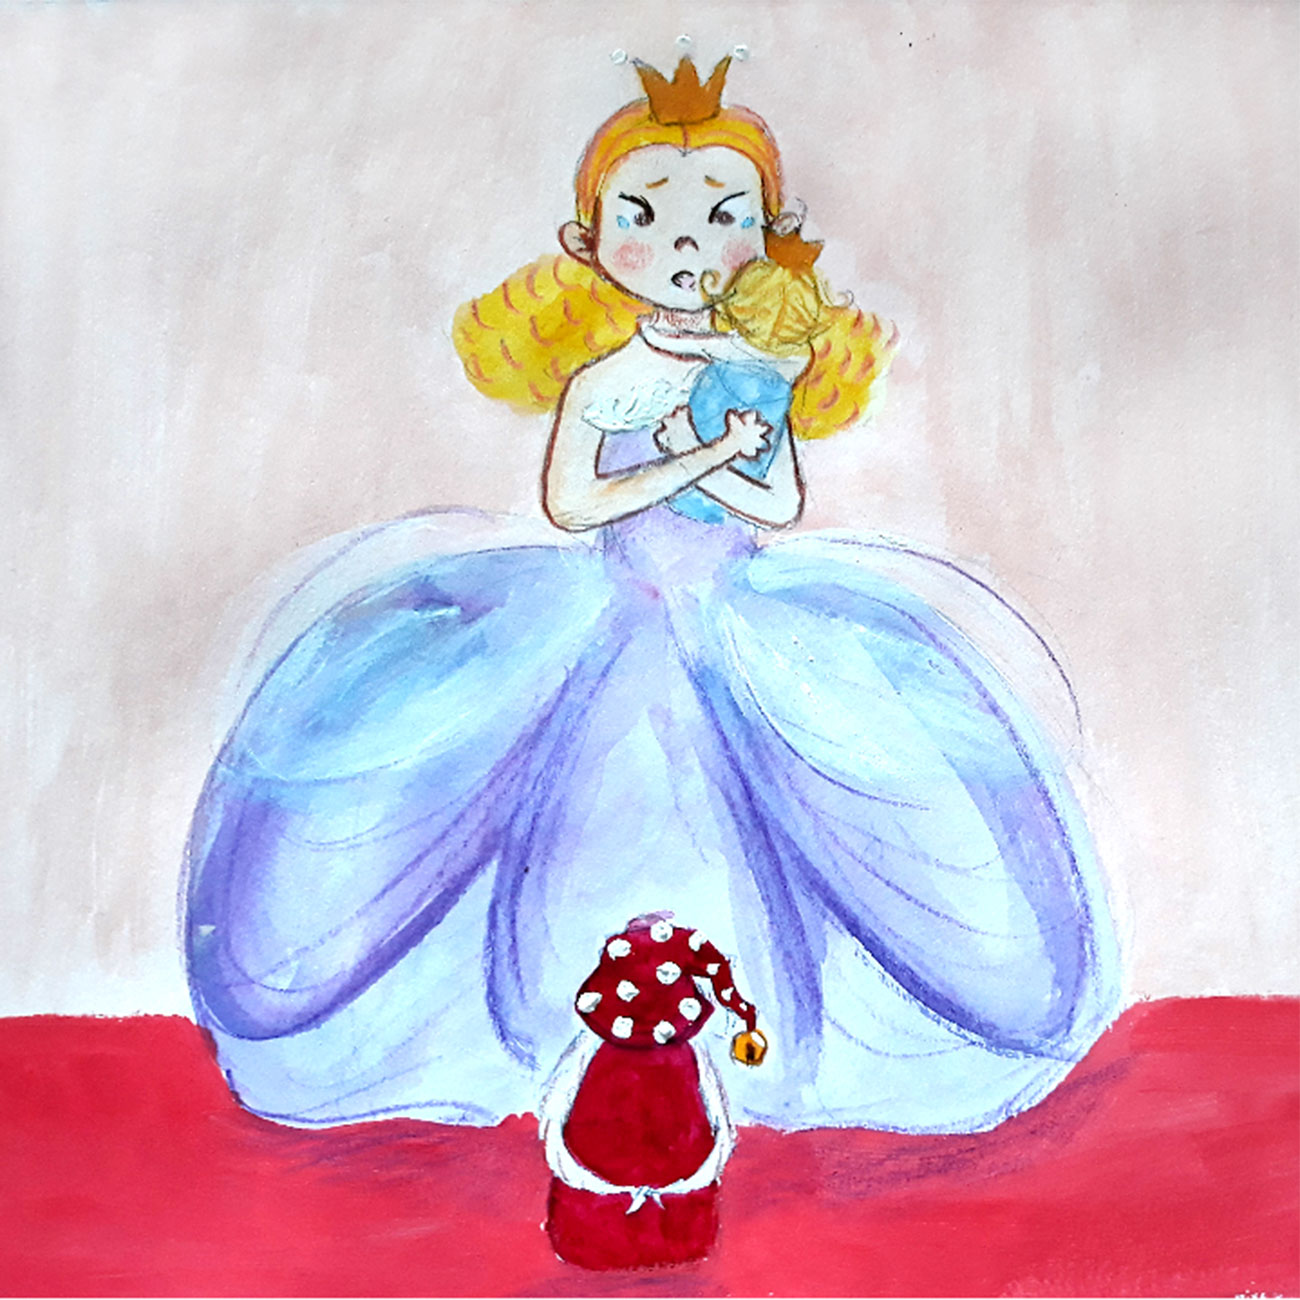 Princess stories for kids Baby Brother Surprise illustration 21